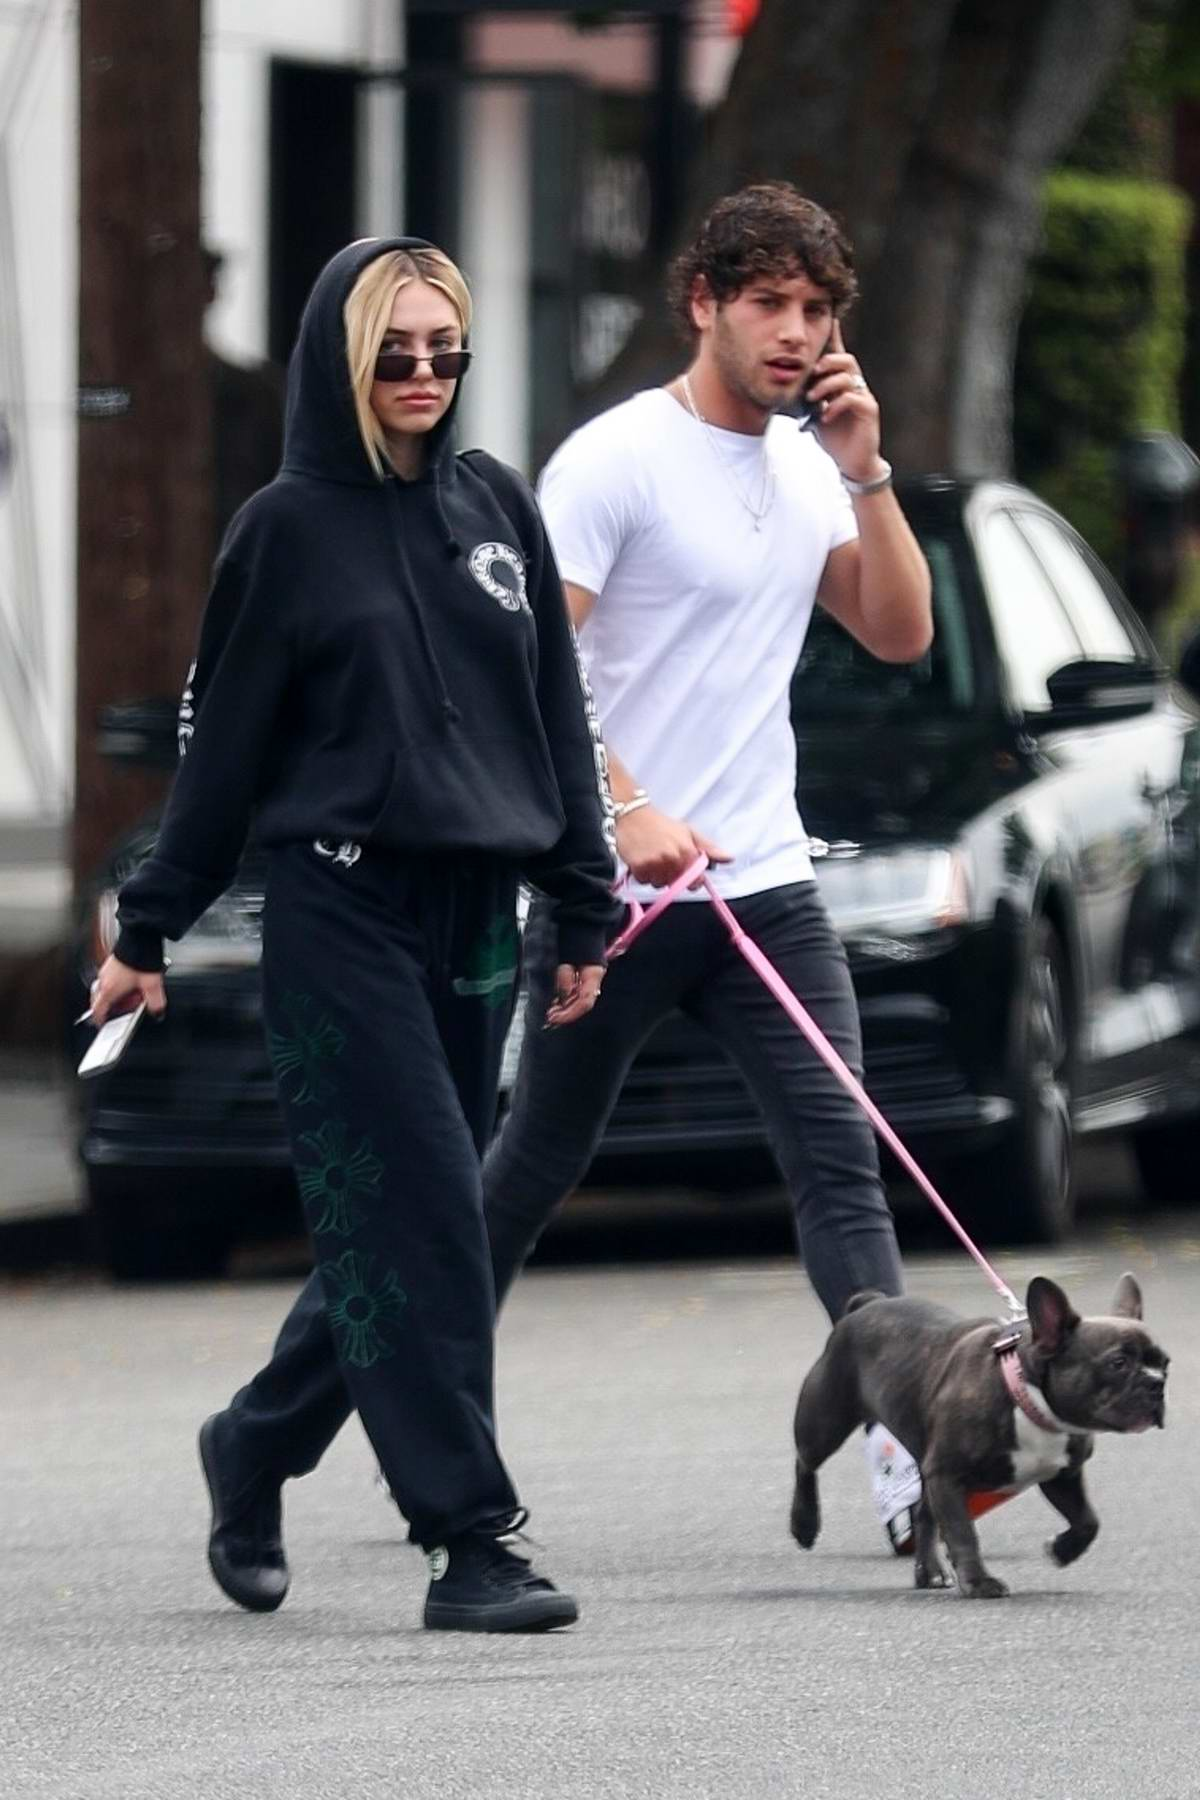 Delilah Hamlin steps out for coffee with Eyal Booker at Alfred's Coffee in West Hollywood, Los Angeles